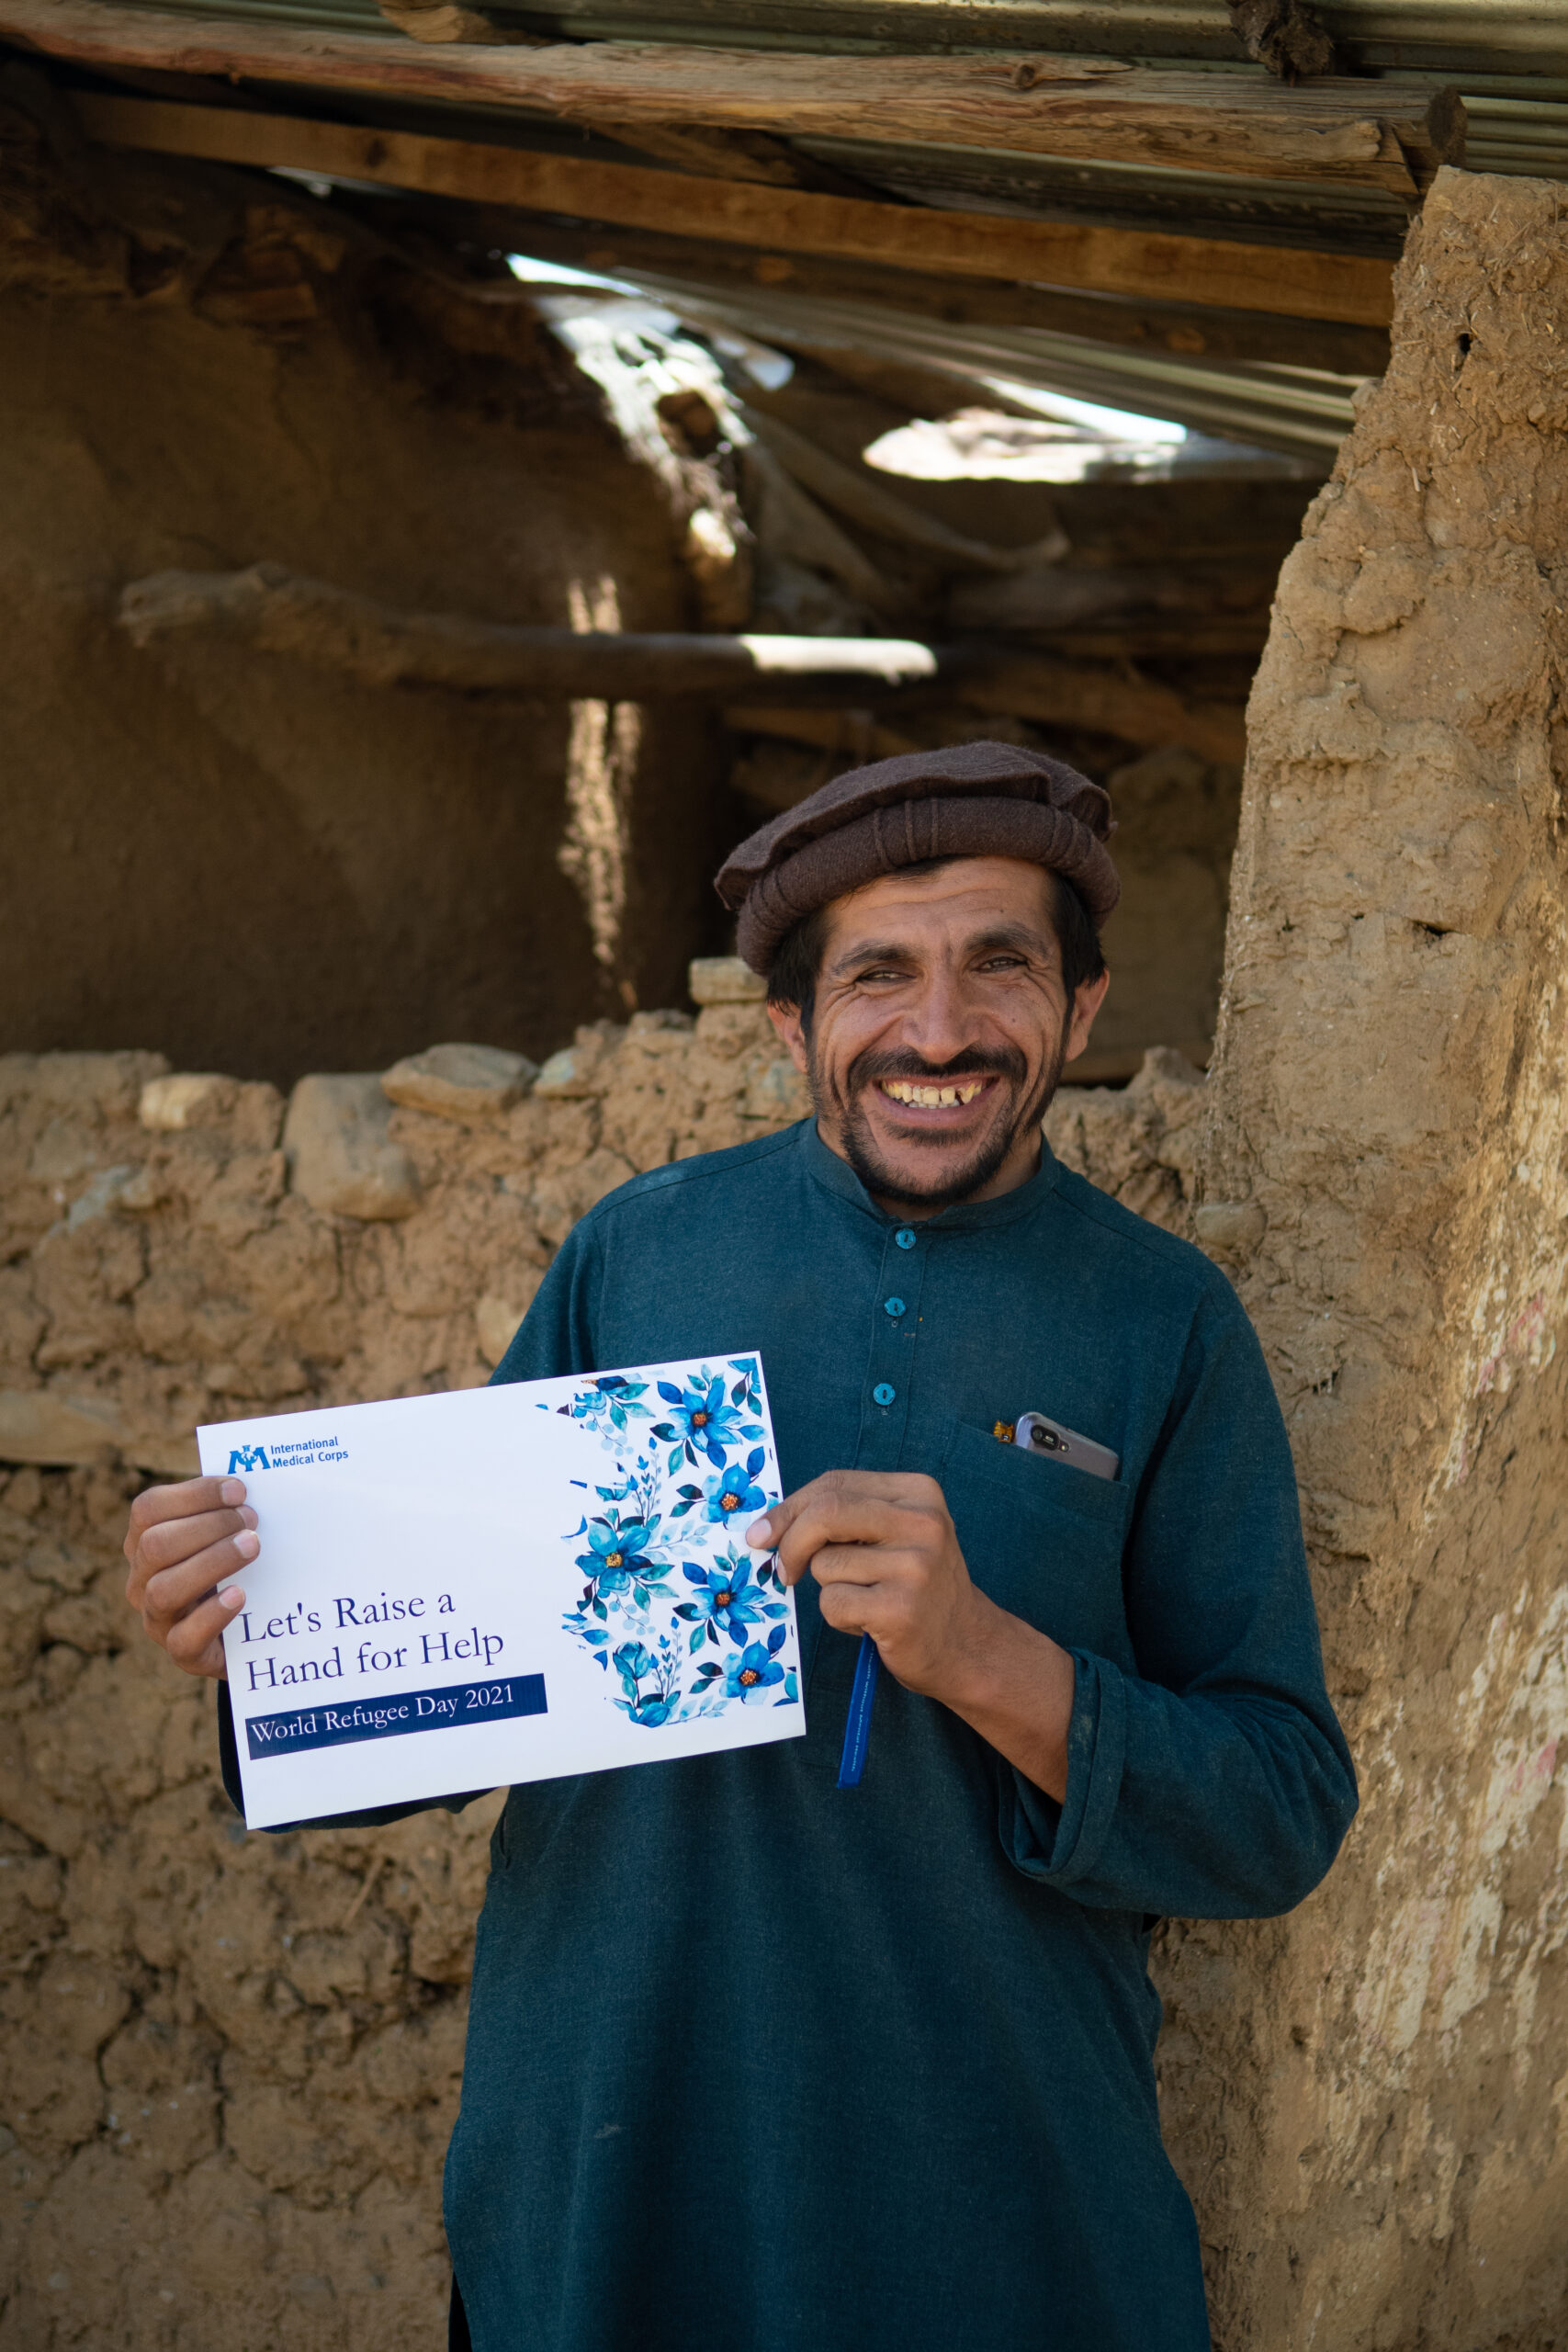 In honor of World Refugee Day, our Pakistan team held activities with Afghan refugees in the Khaaki Refugee camp.